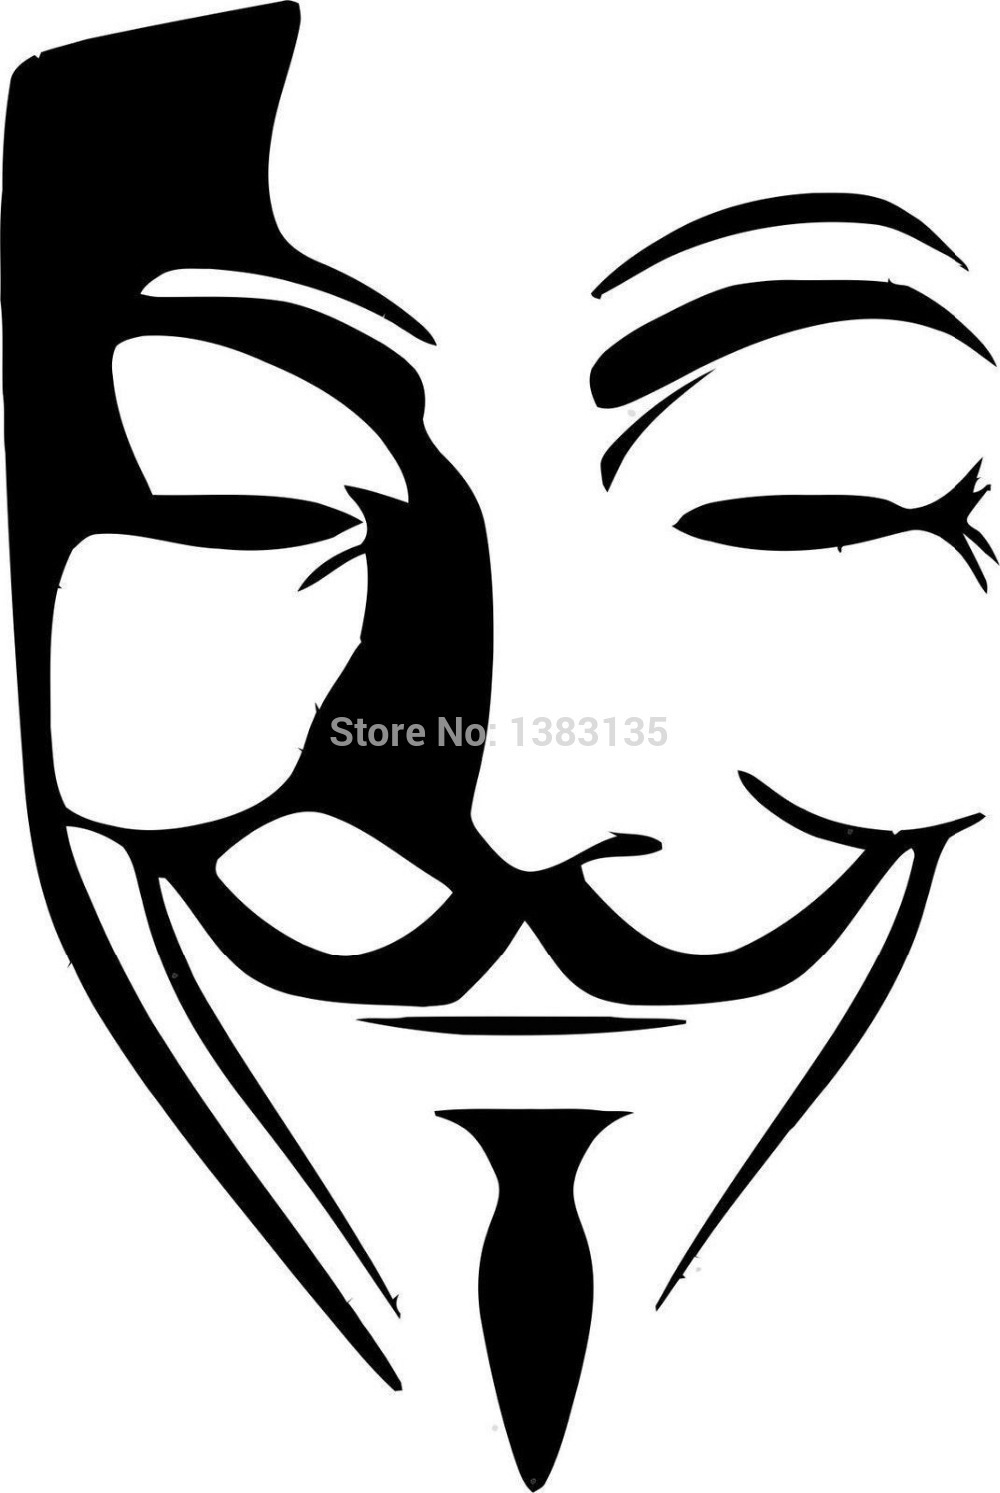 Wholesale 50 Pcs/lot Anonymous Mask Vector Image Car Sticker For Truck  Window Bumper SUV - Anonymous Vector PNG